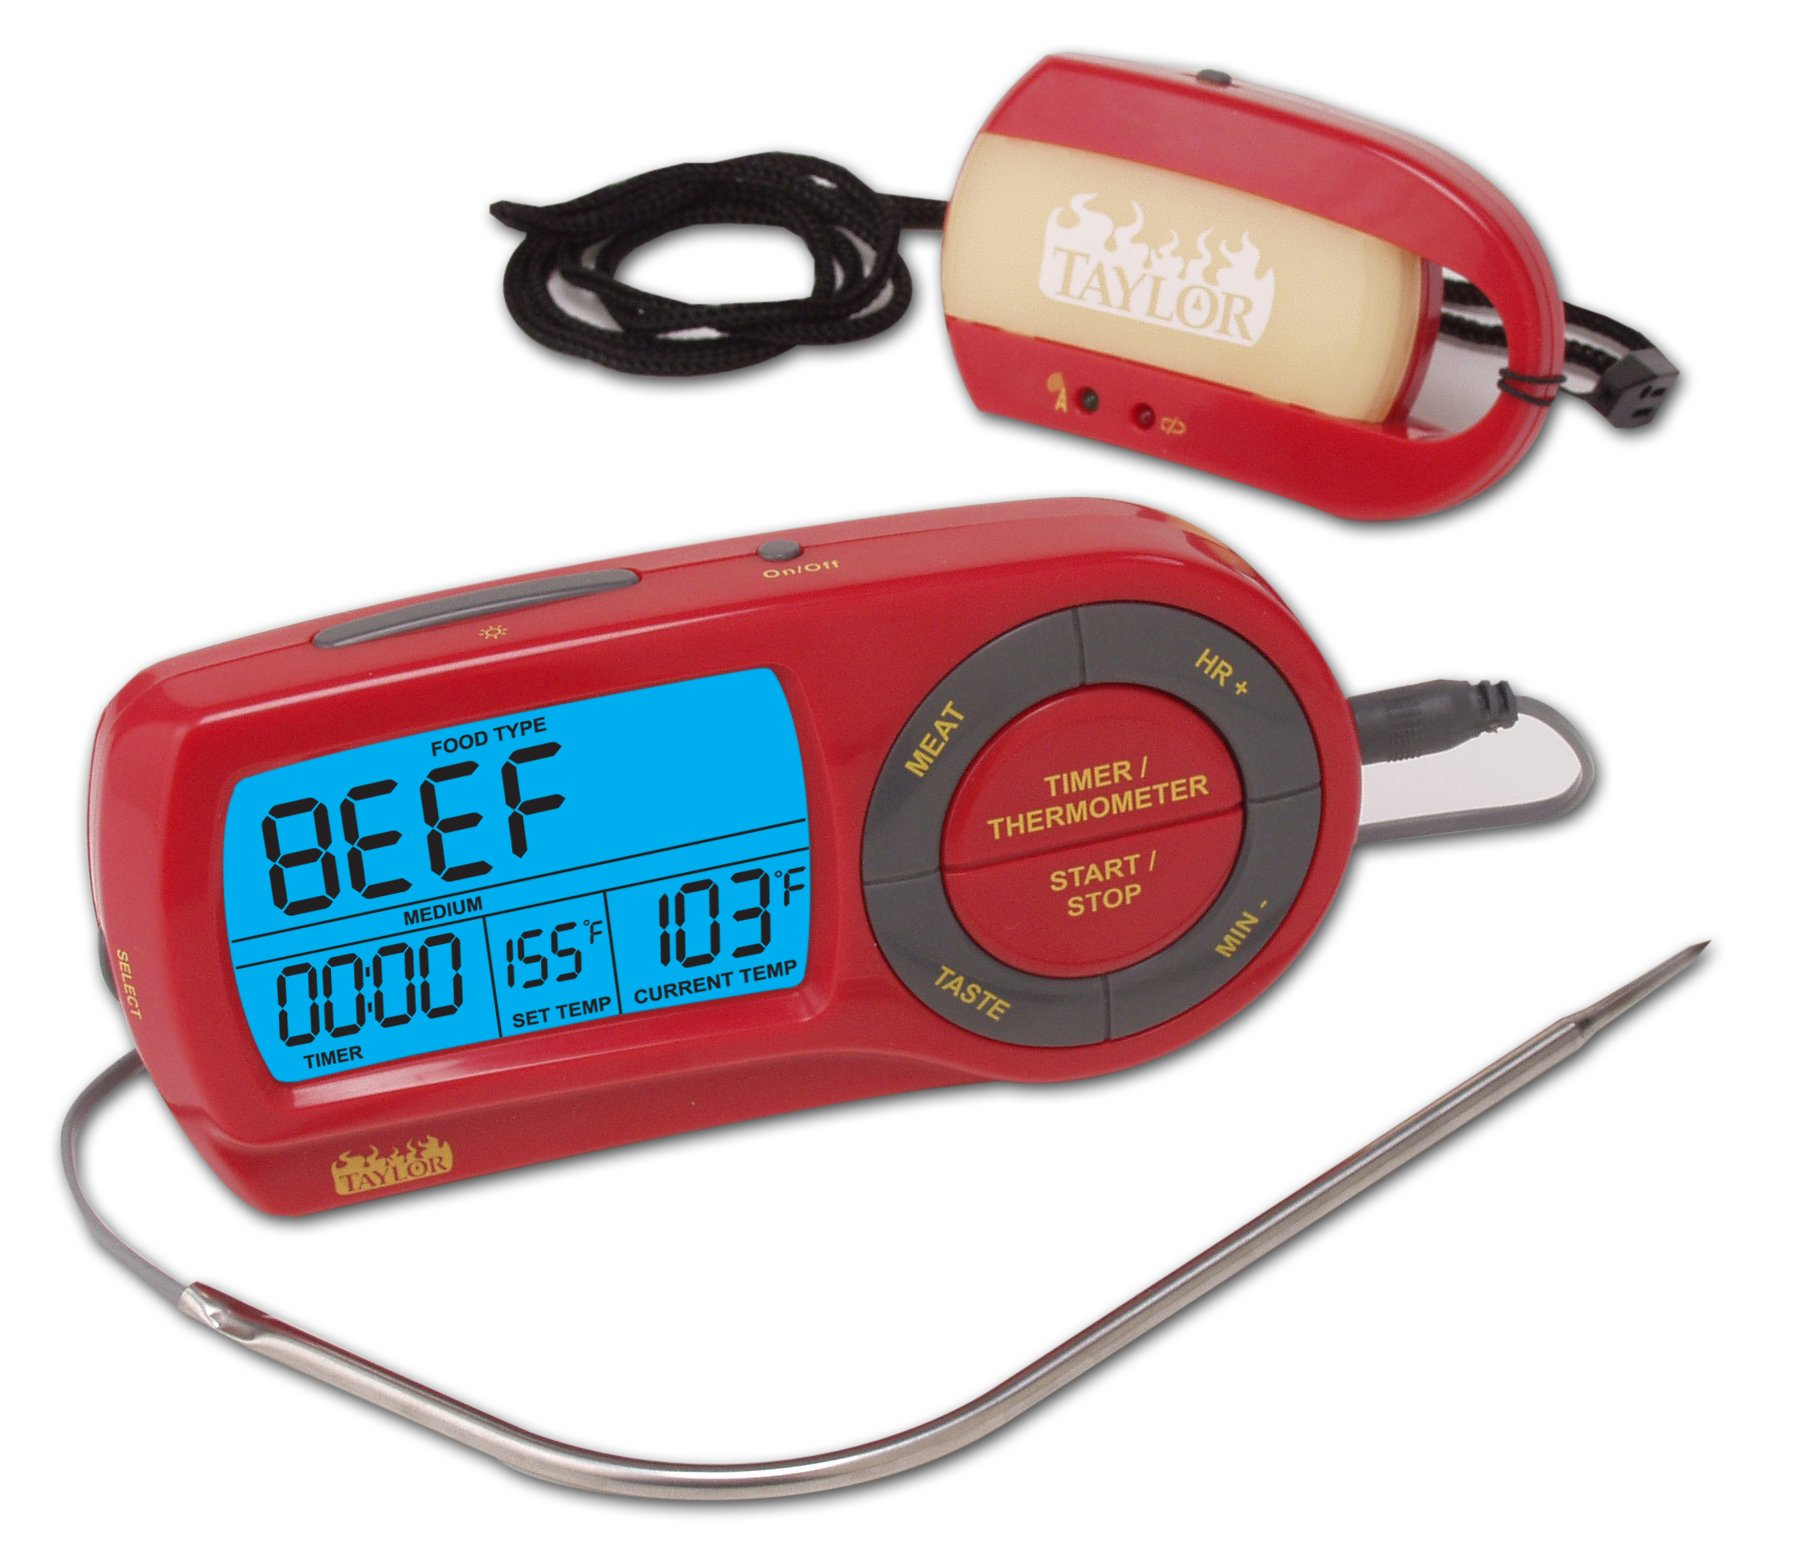 Taylor Weekend Warrior Wireless Thermometer with Remote Pager-Discontinued By Manufacturer